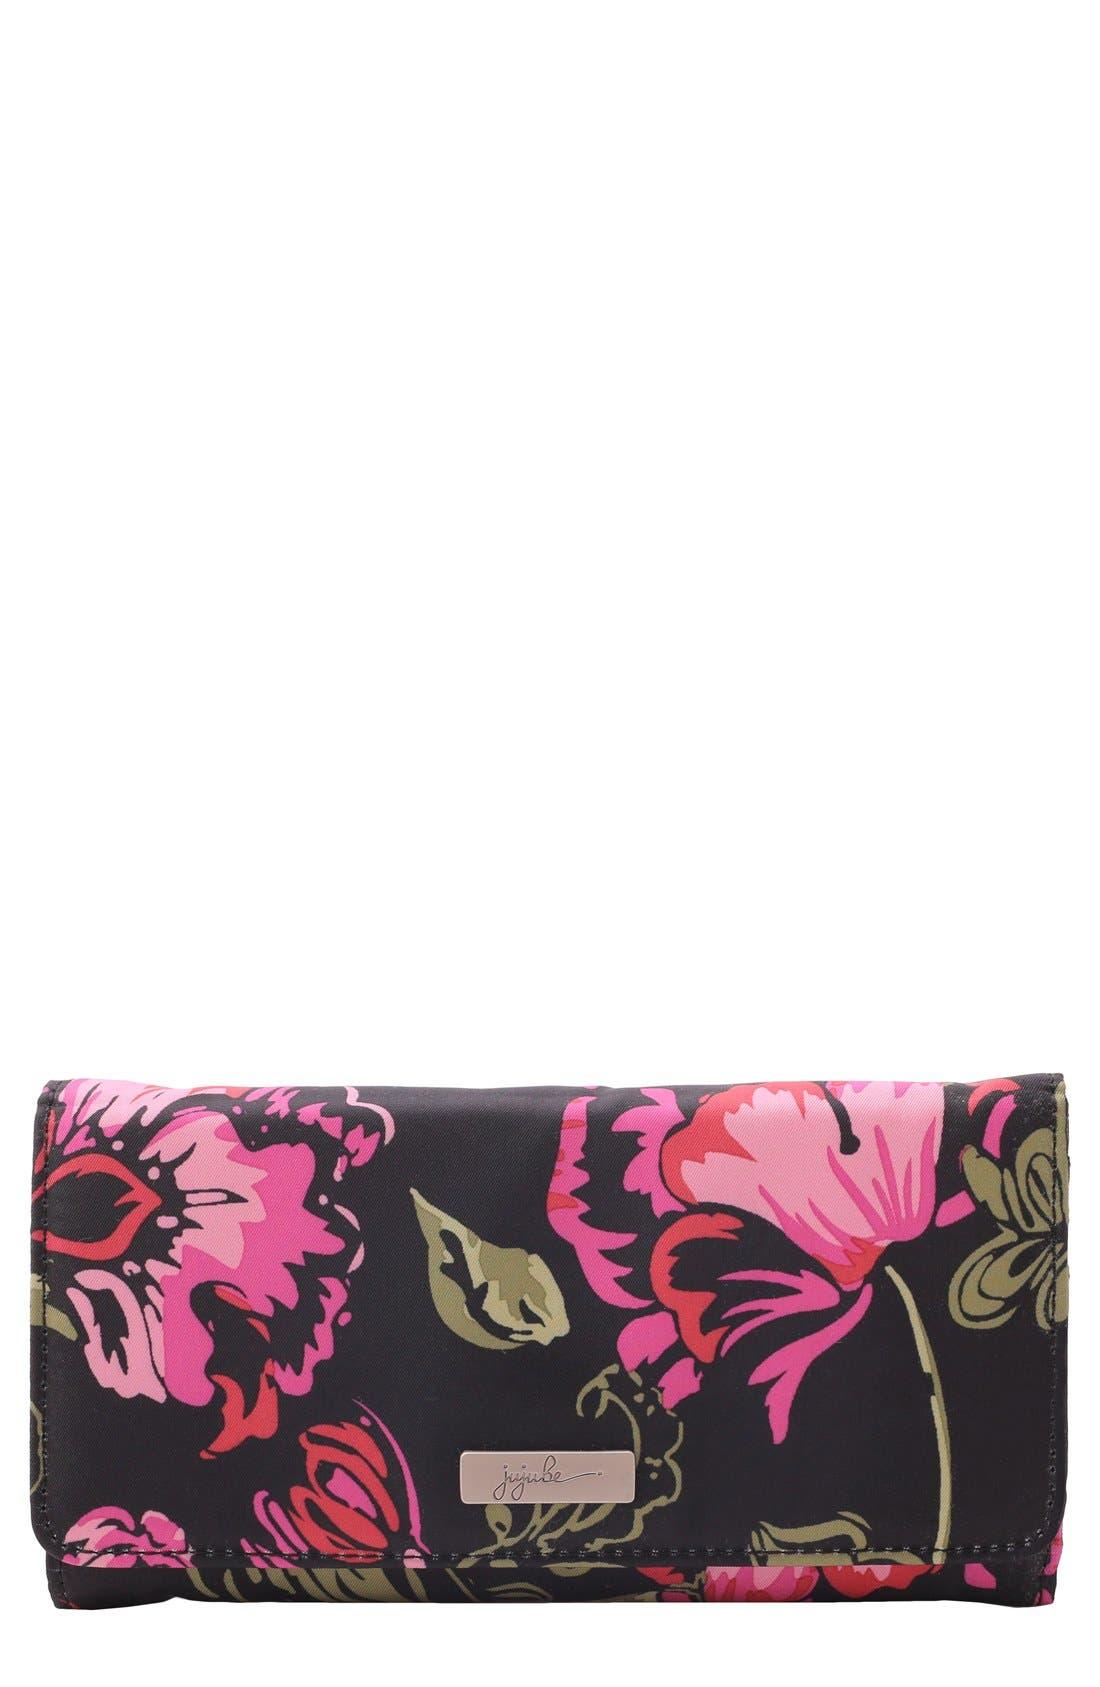 Alternate Image 1 Selected - Ju-Ju-Be Legacy Be Rich Trifold Clutch Wallet